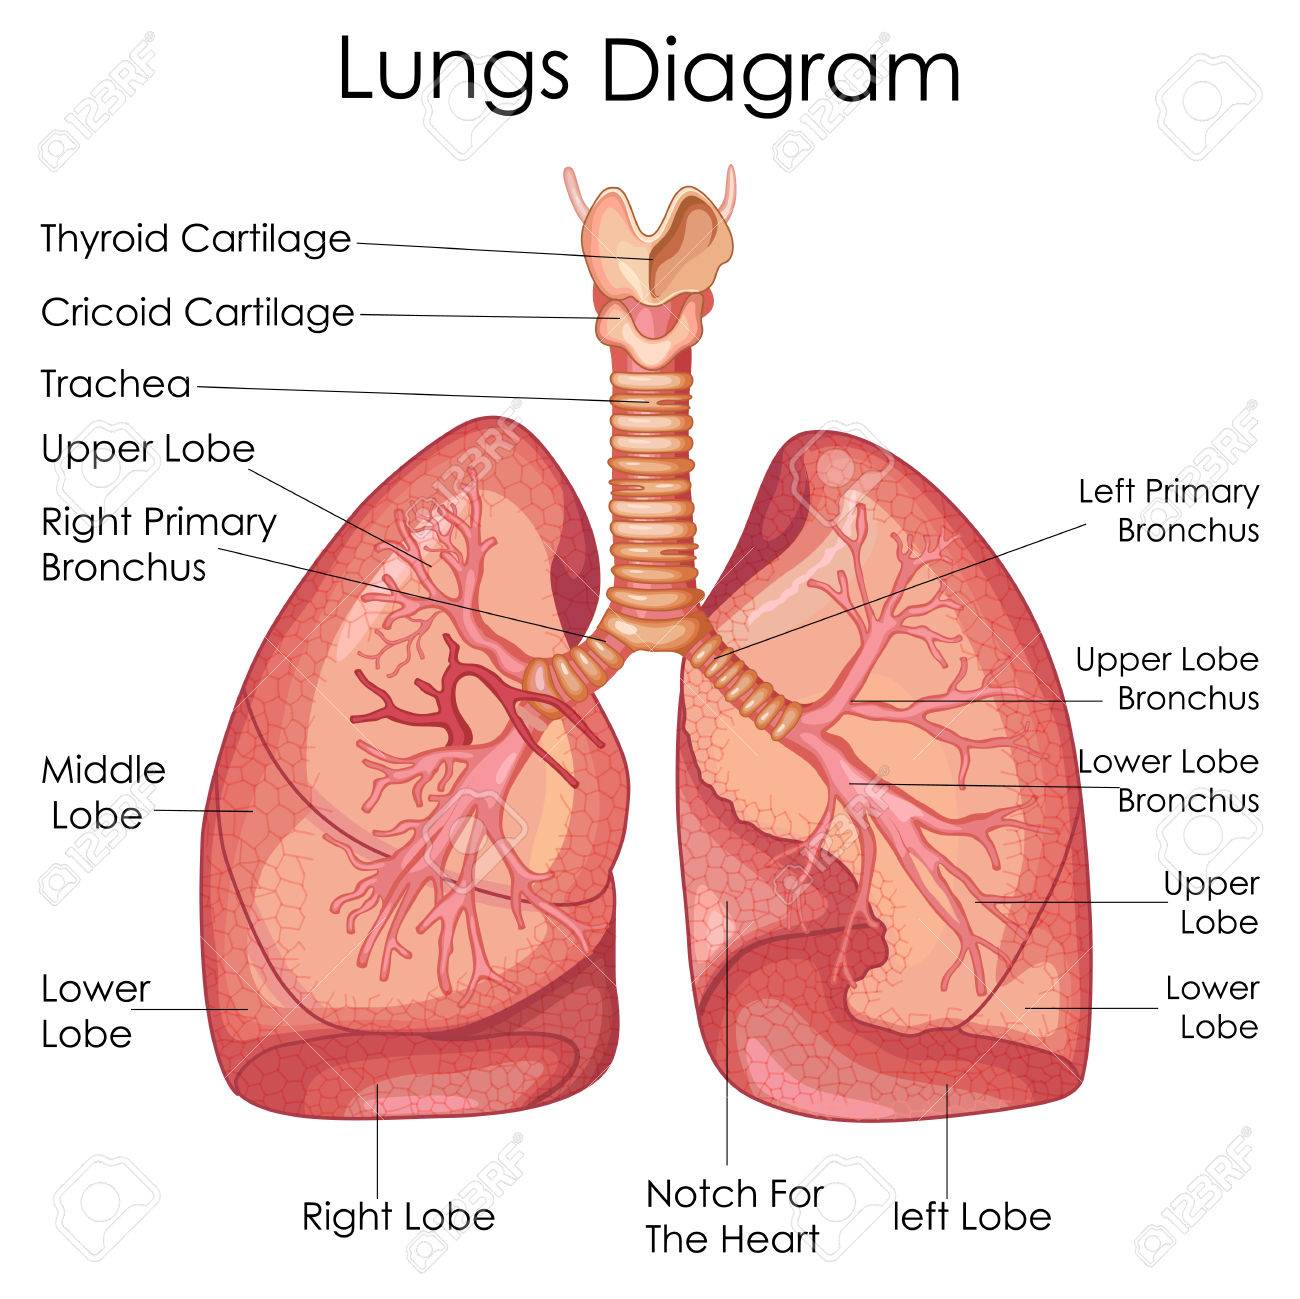 hight resolution of medical education chart of biology for lungs diagram vector illustration stock vector 79651312